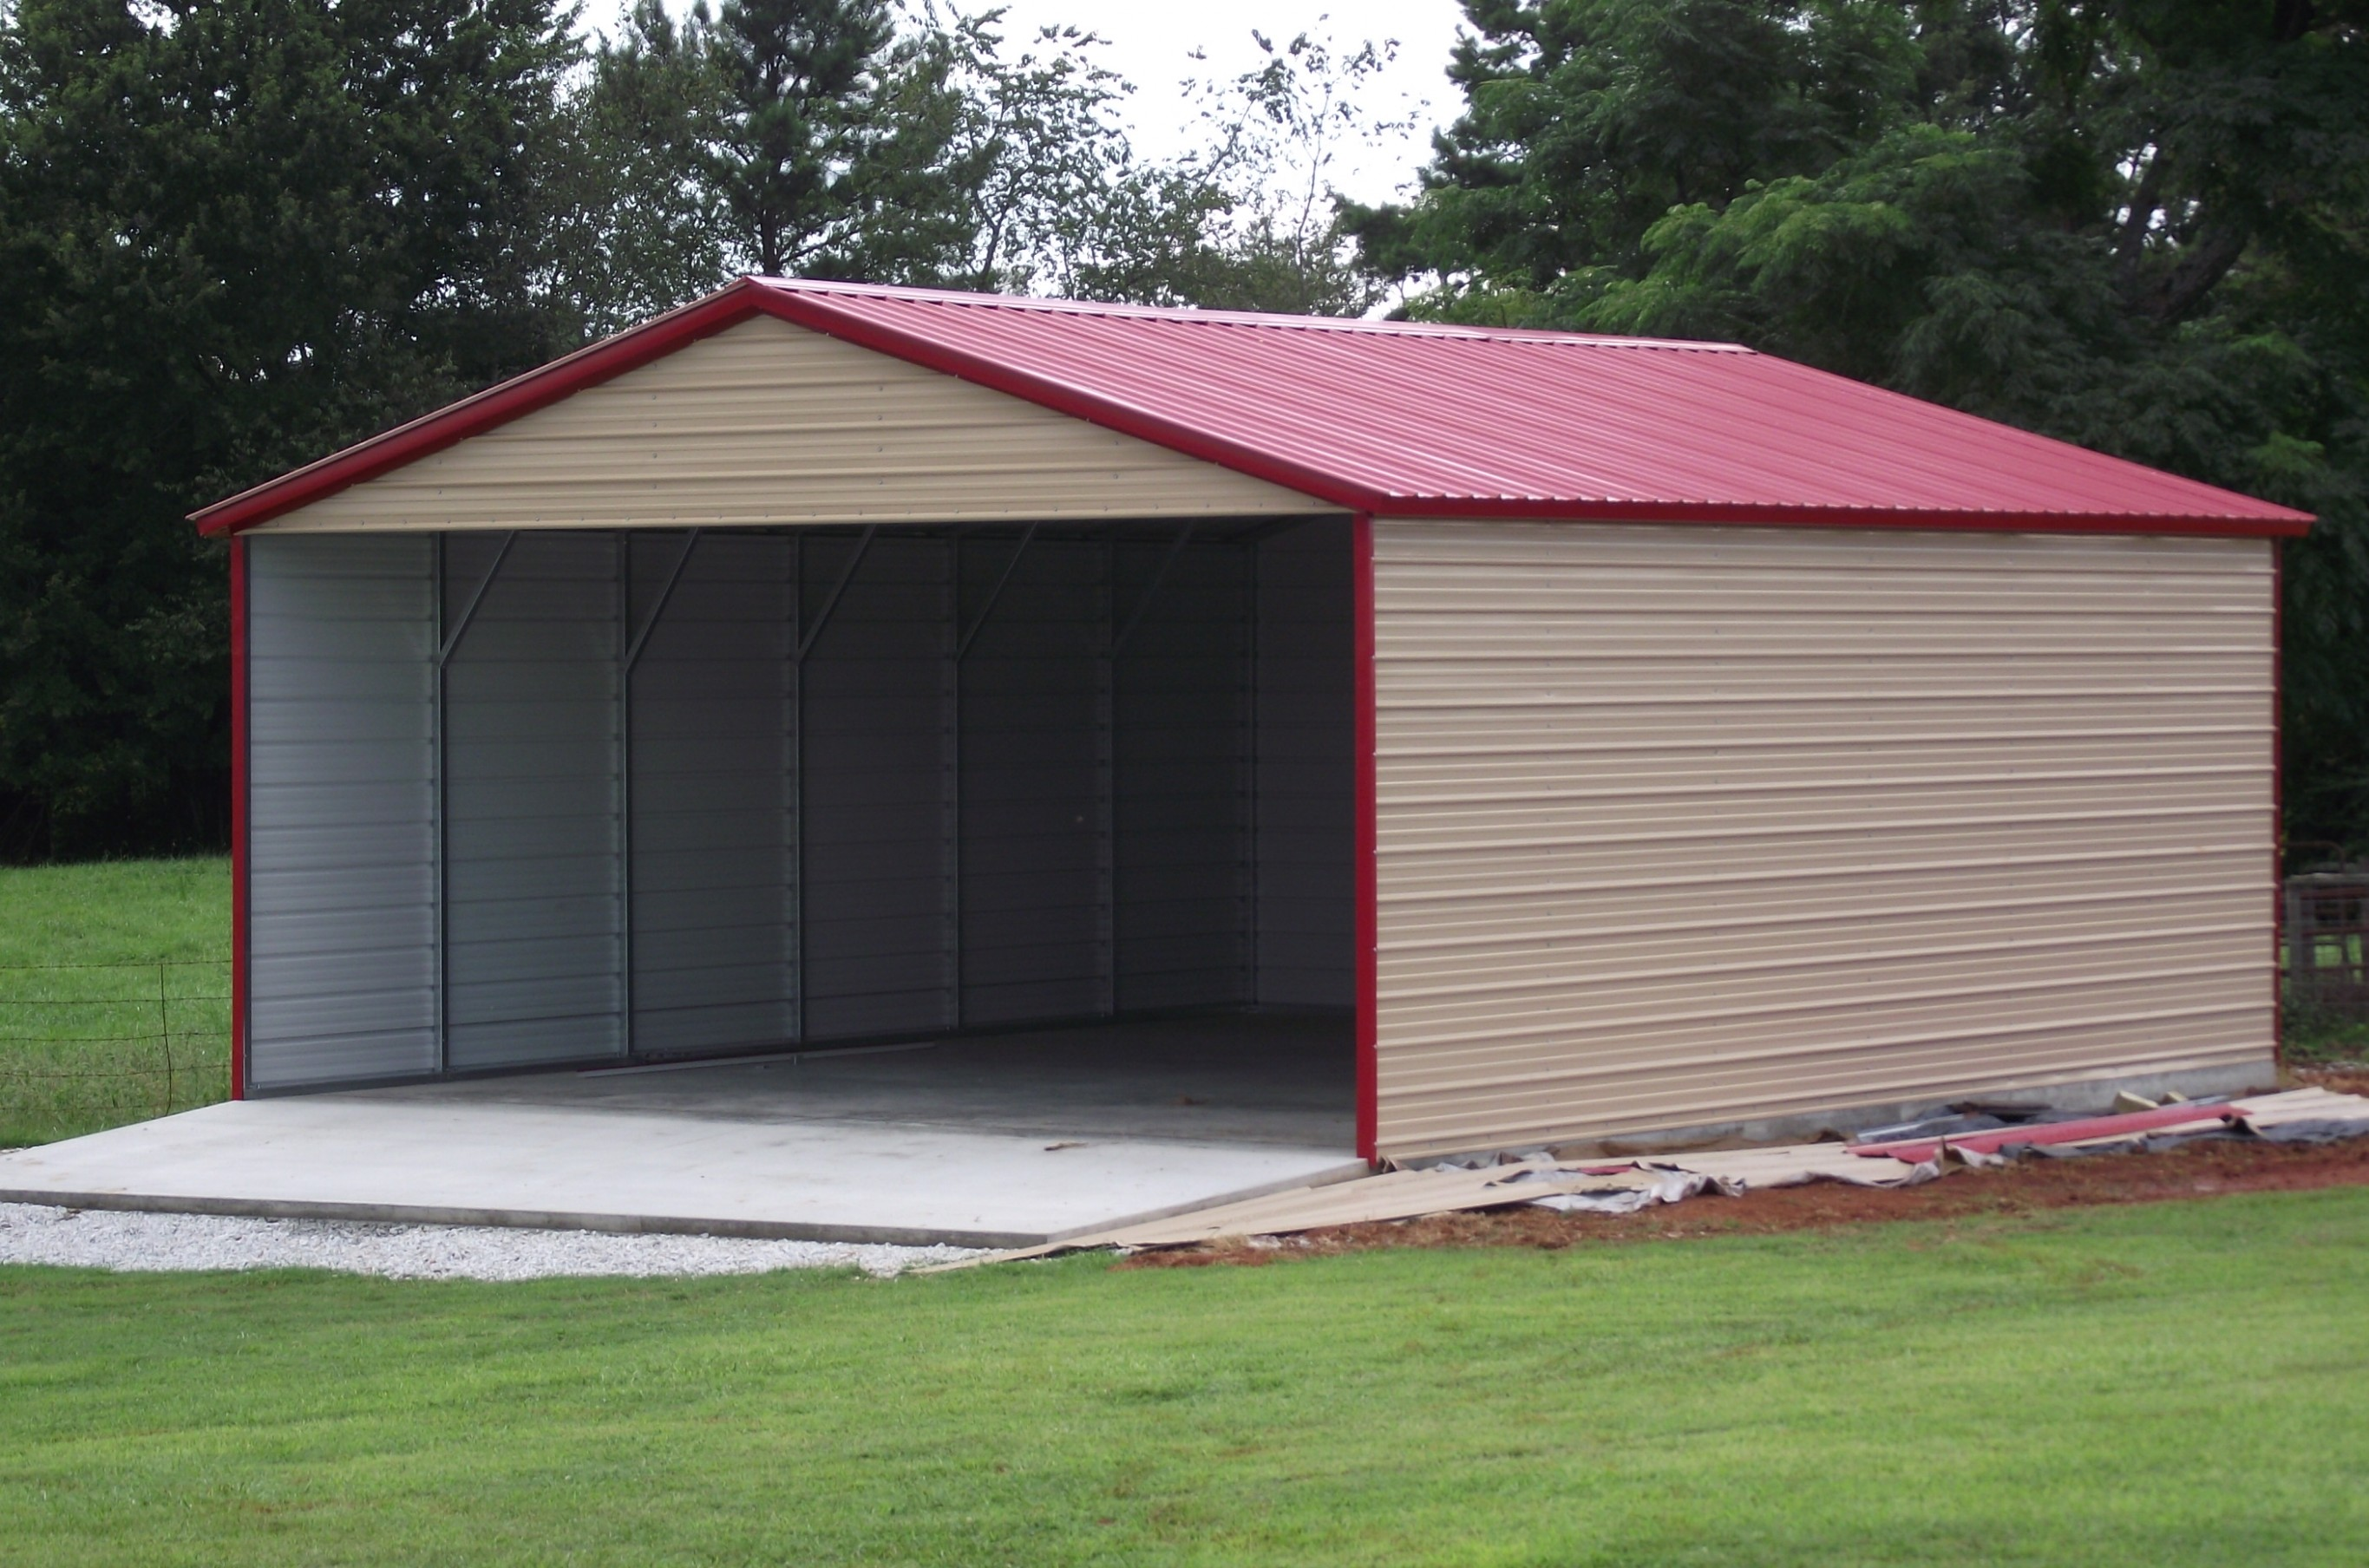 Five Features Of Inexpensive Metal Carports That Make Everyone Love It | inexpensive metal carports